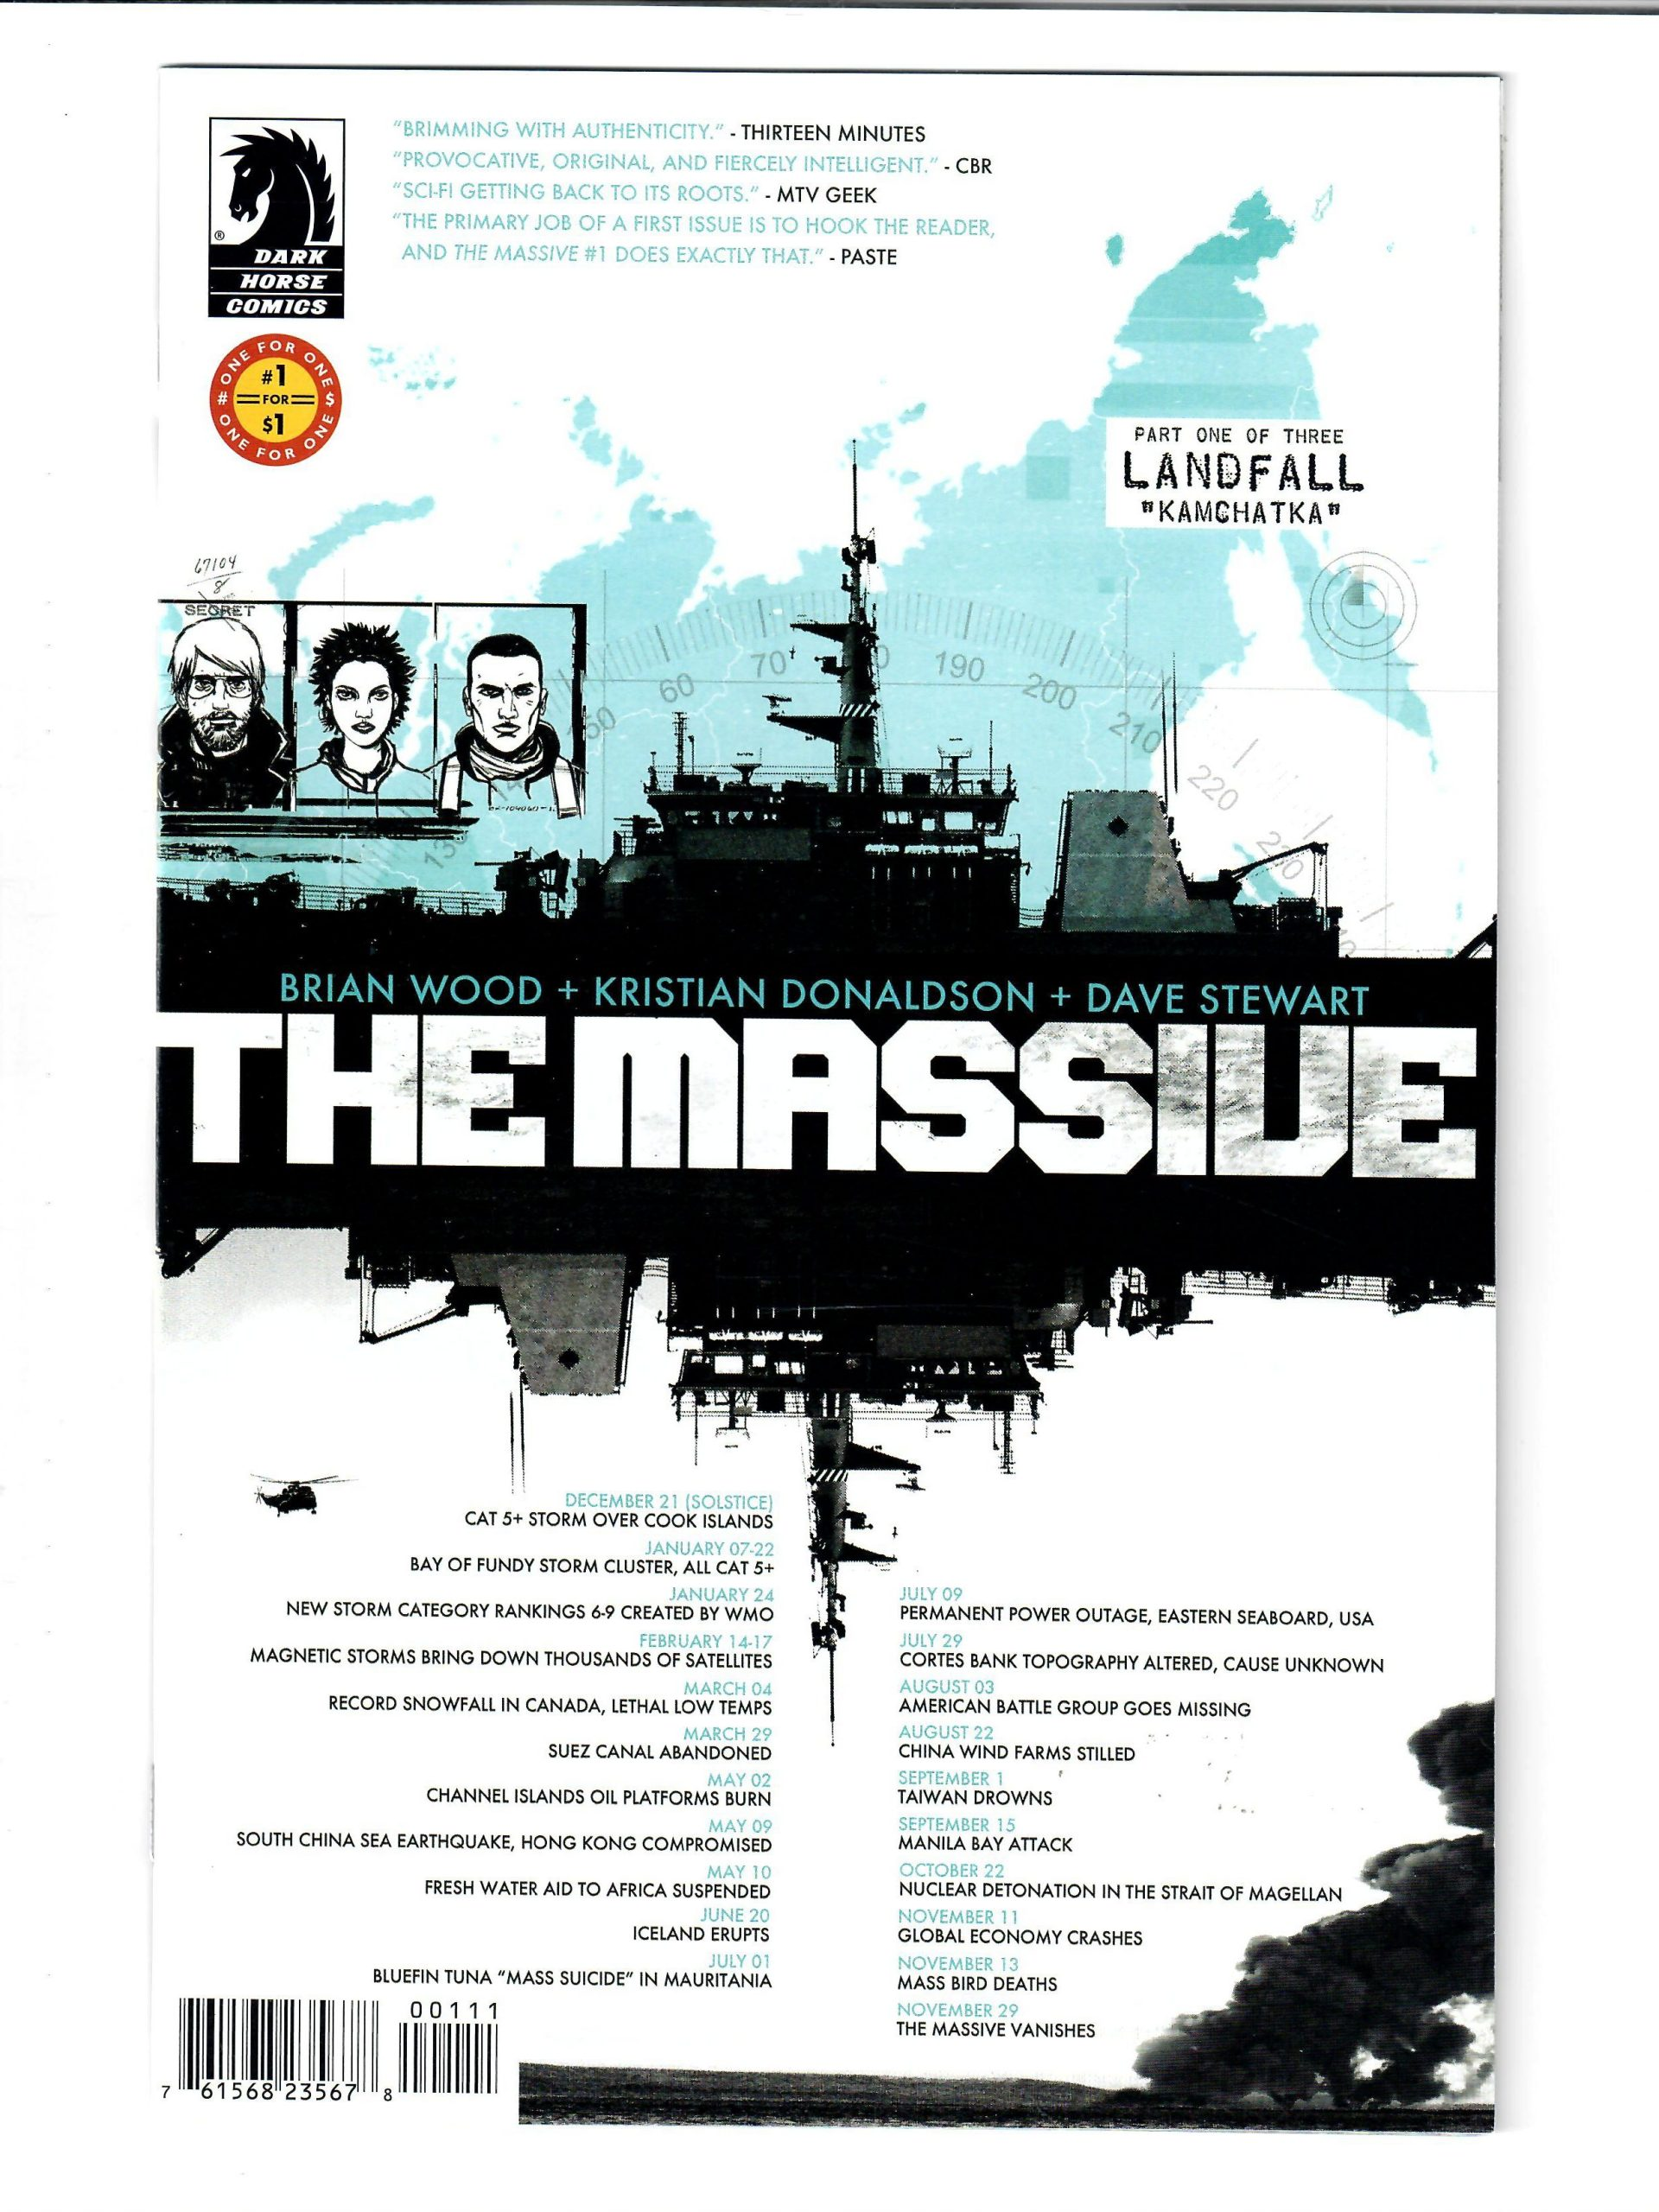 DARK HORSE COMICS THE MASSIVE #1 APR 2012 VG COMIC #149838-D-2